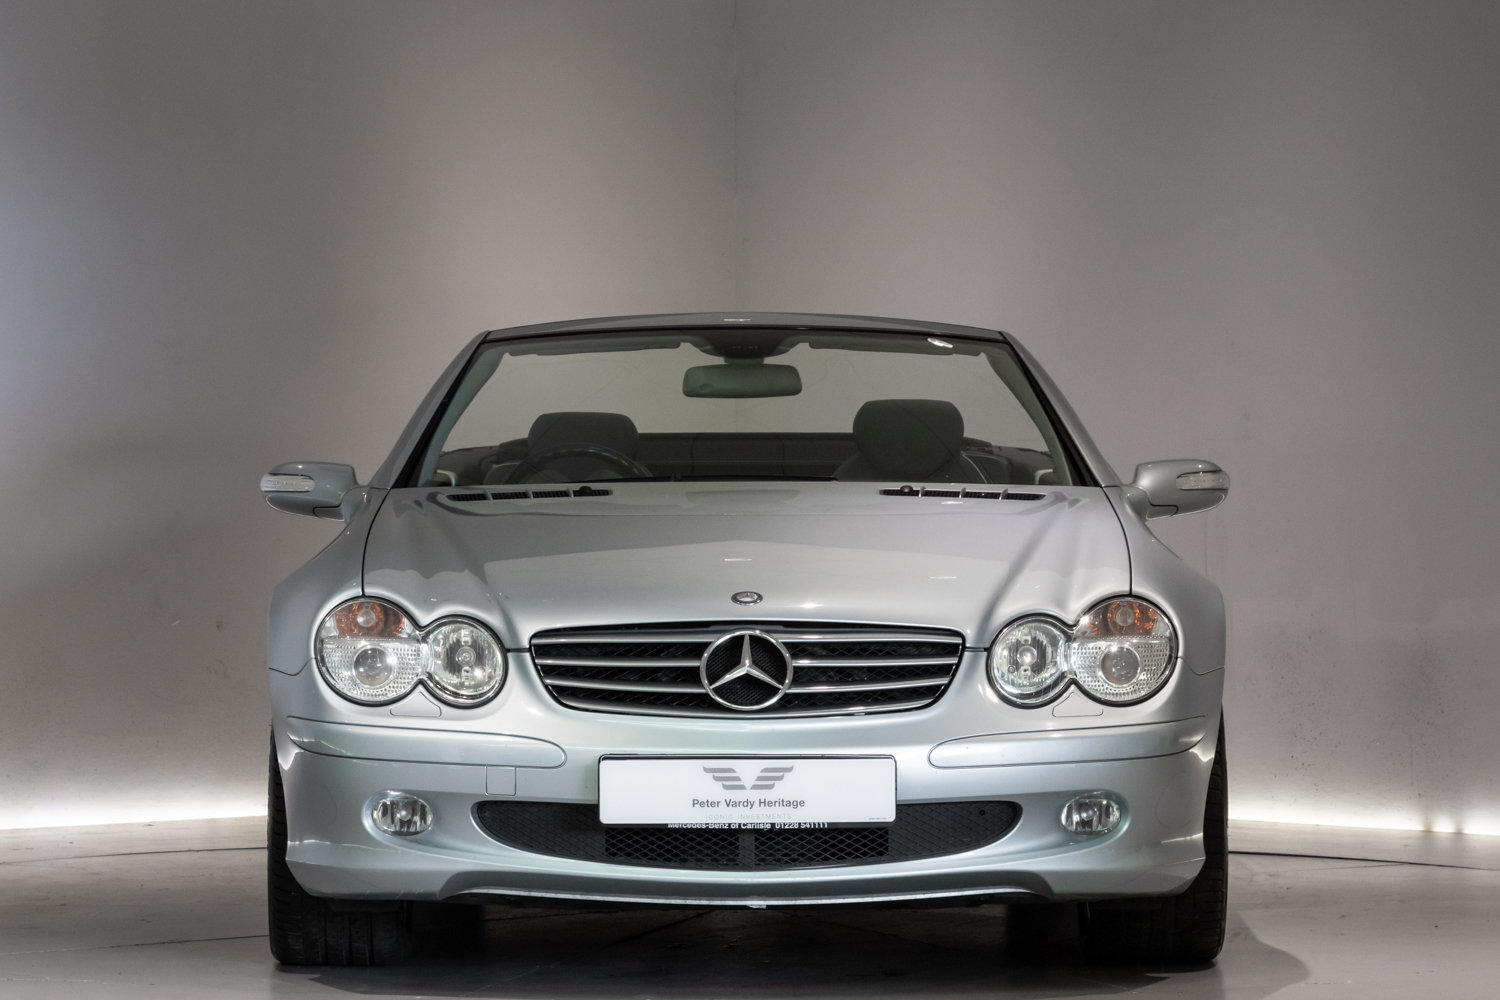 2004 Navigation - AMG Alloys - Heated Seats For Sale (picture 4 of 6)